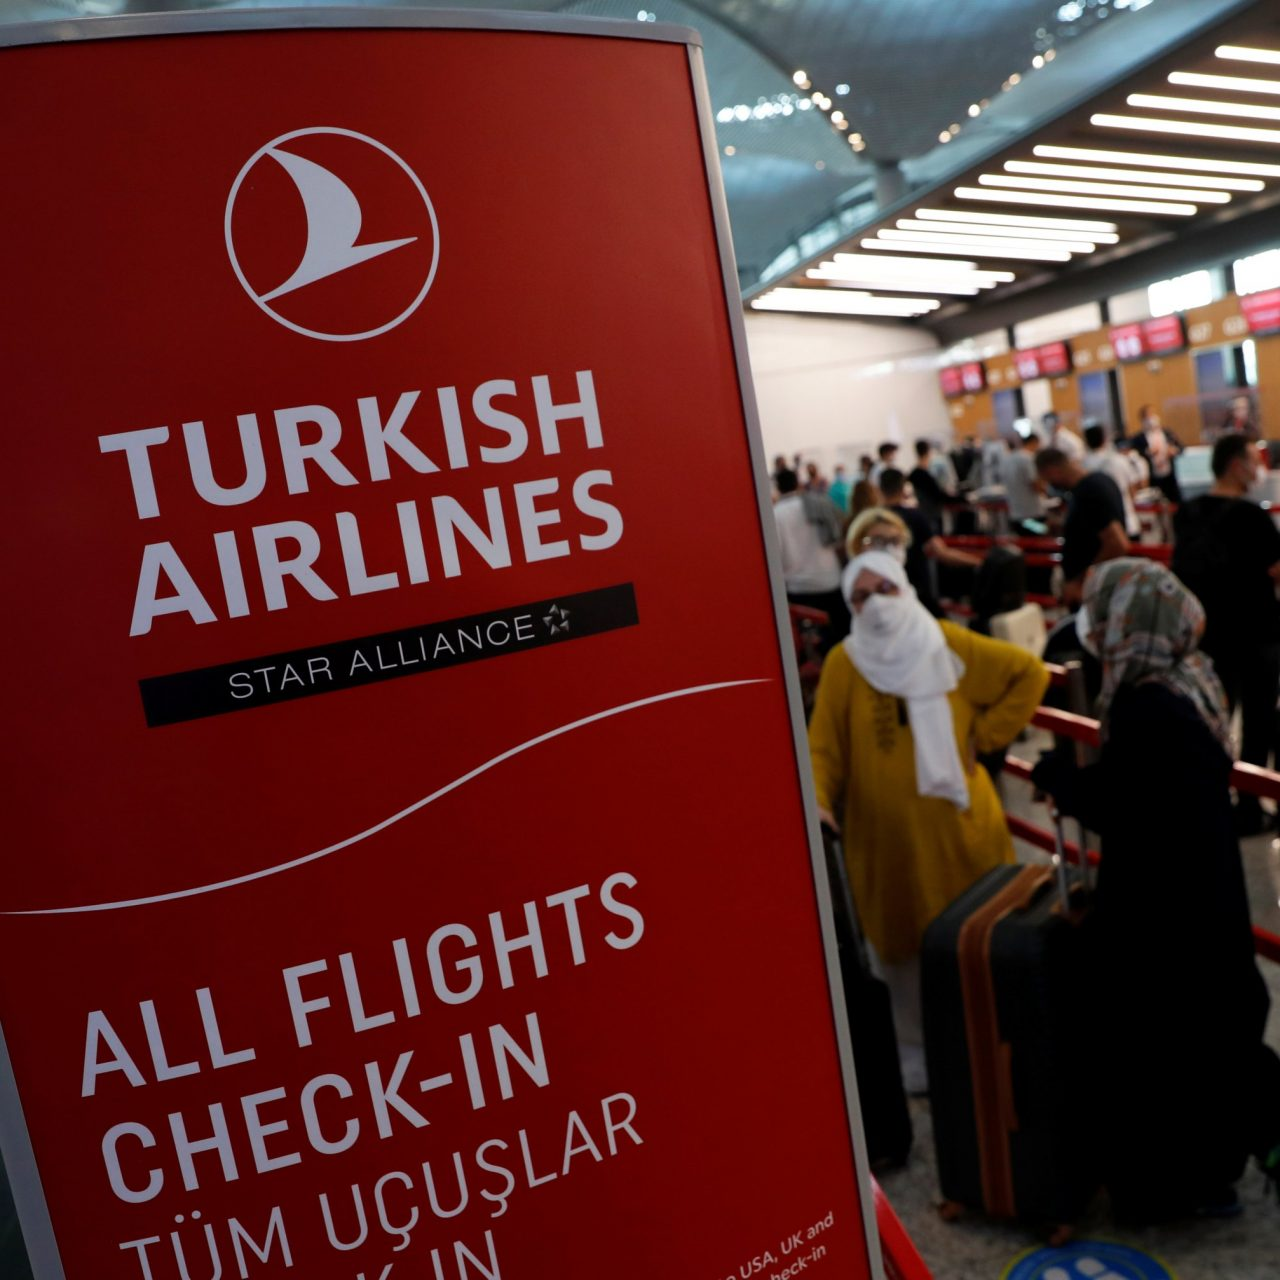 Turkish Airlines operates most flights in single day in Europe